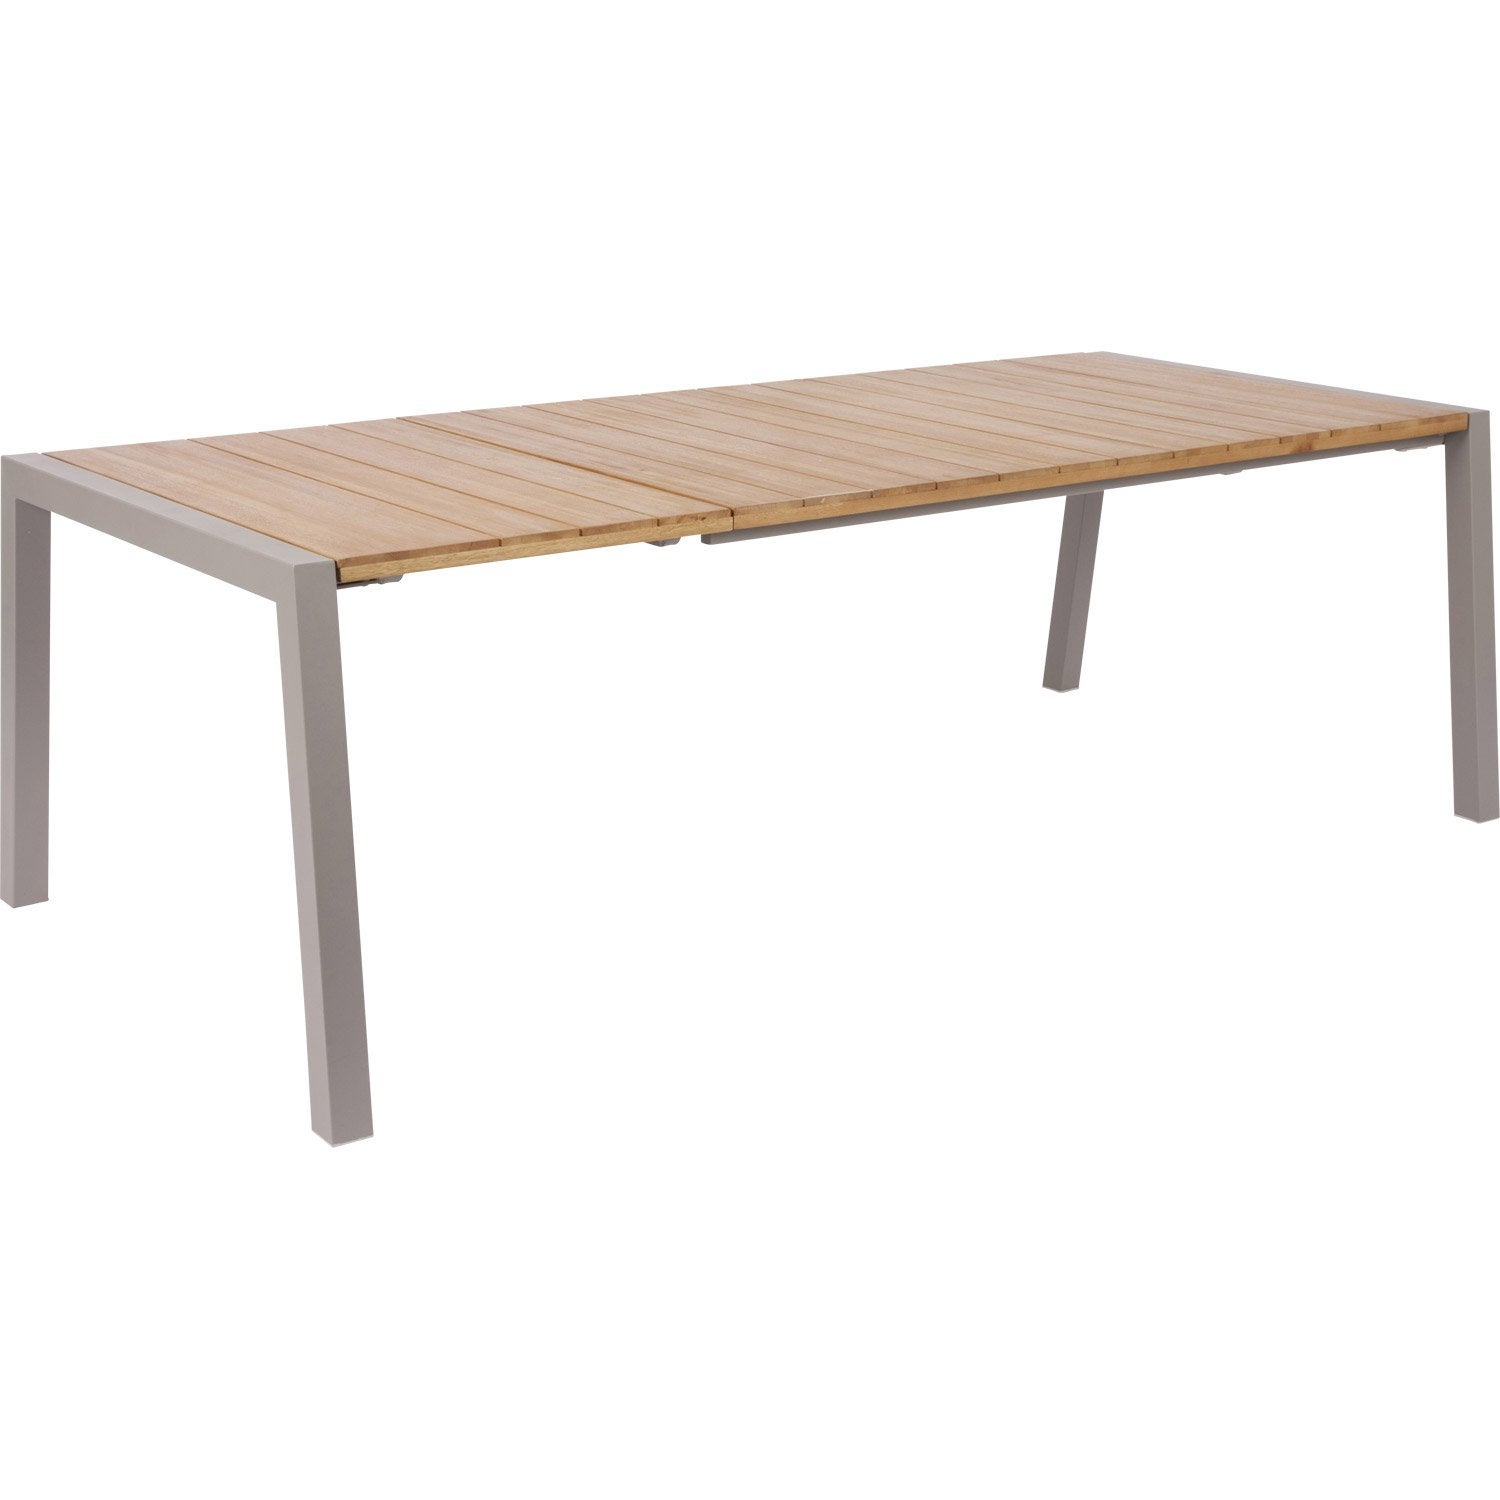 Table de jardin nautique rectangulaire taupe 6 8 personnes for Leroy merlin table jardin